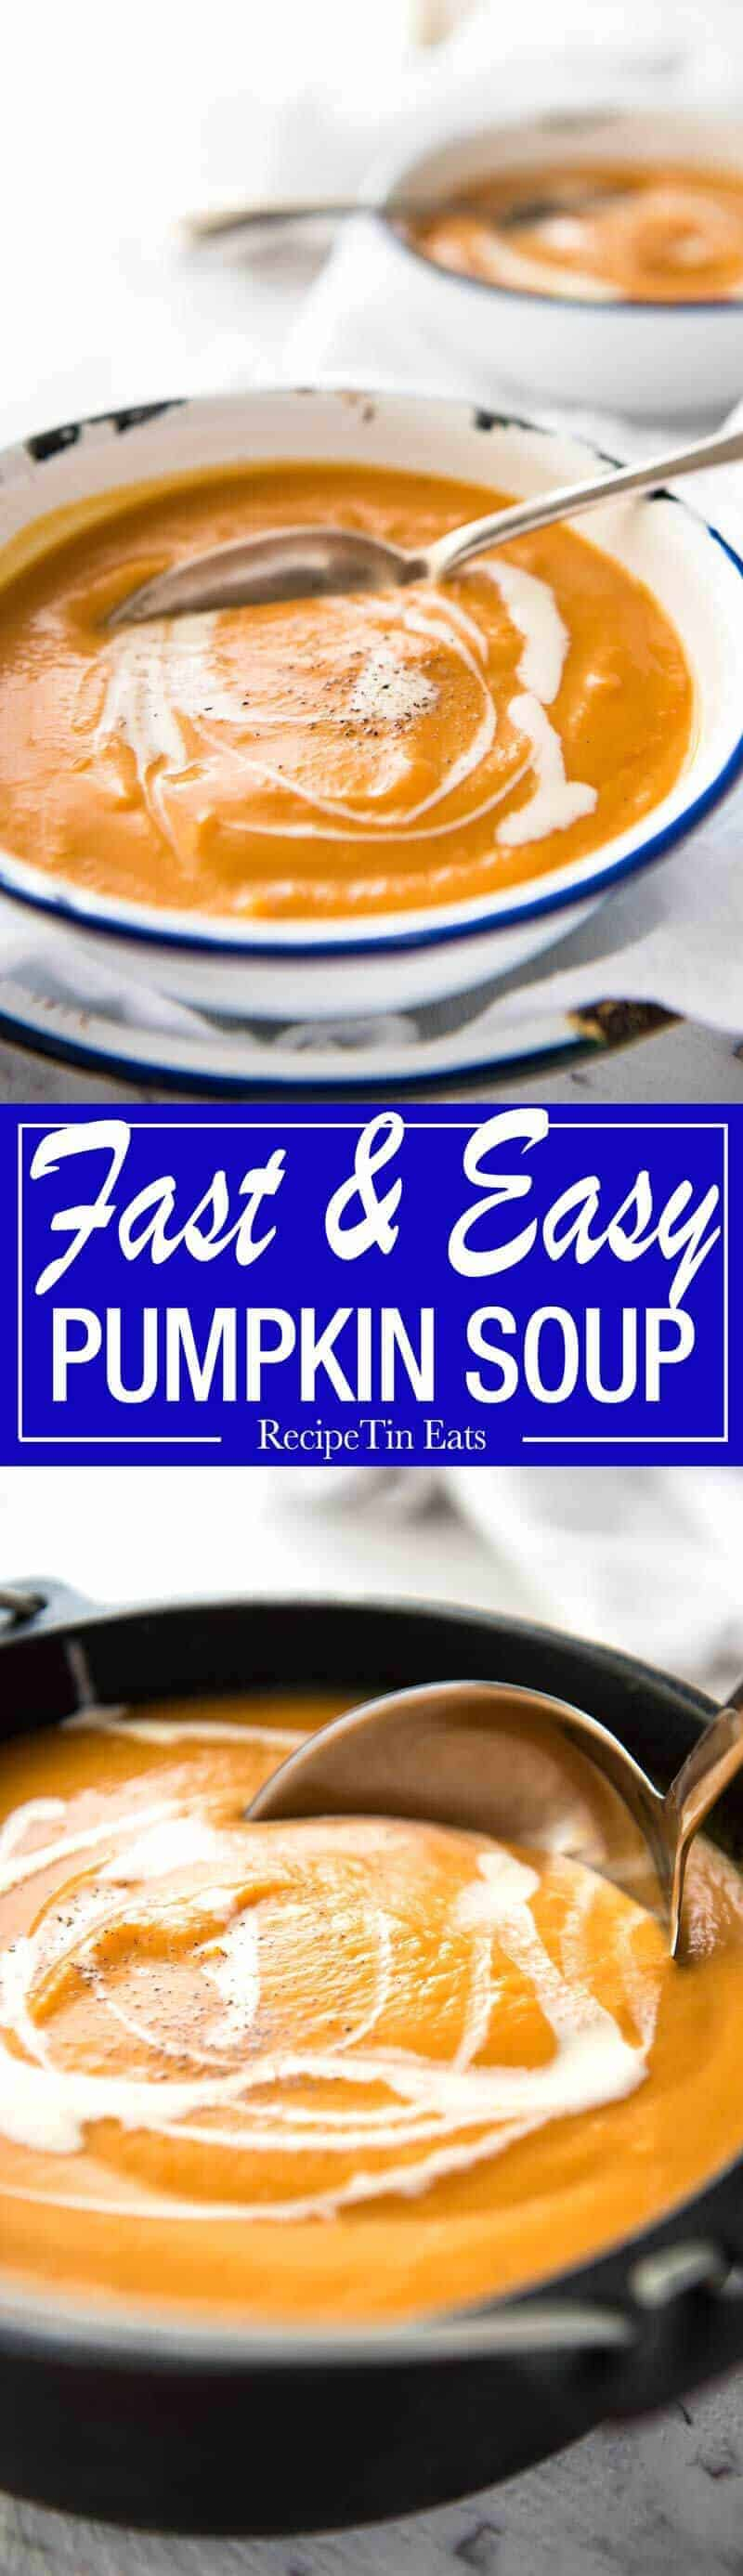 Classic Easy Pumpkin Soup - On the table in 15 minutes! Made with fresh pumpkin or butternut squash recipetineats.com